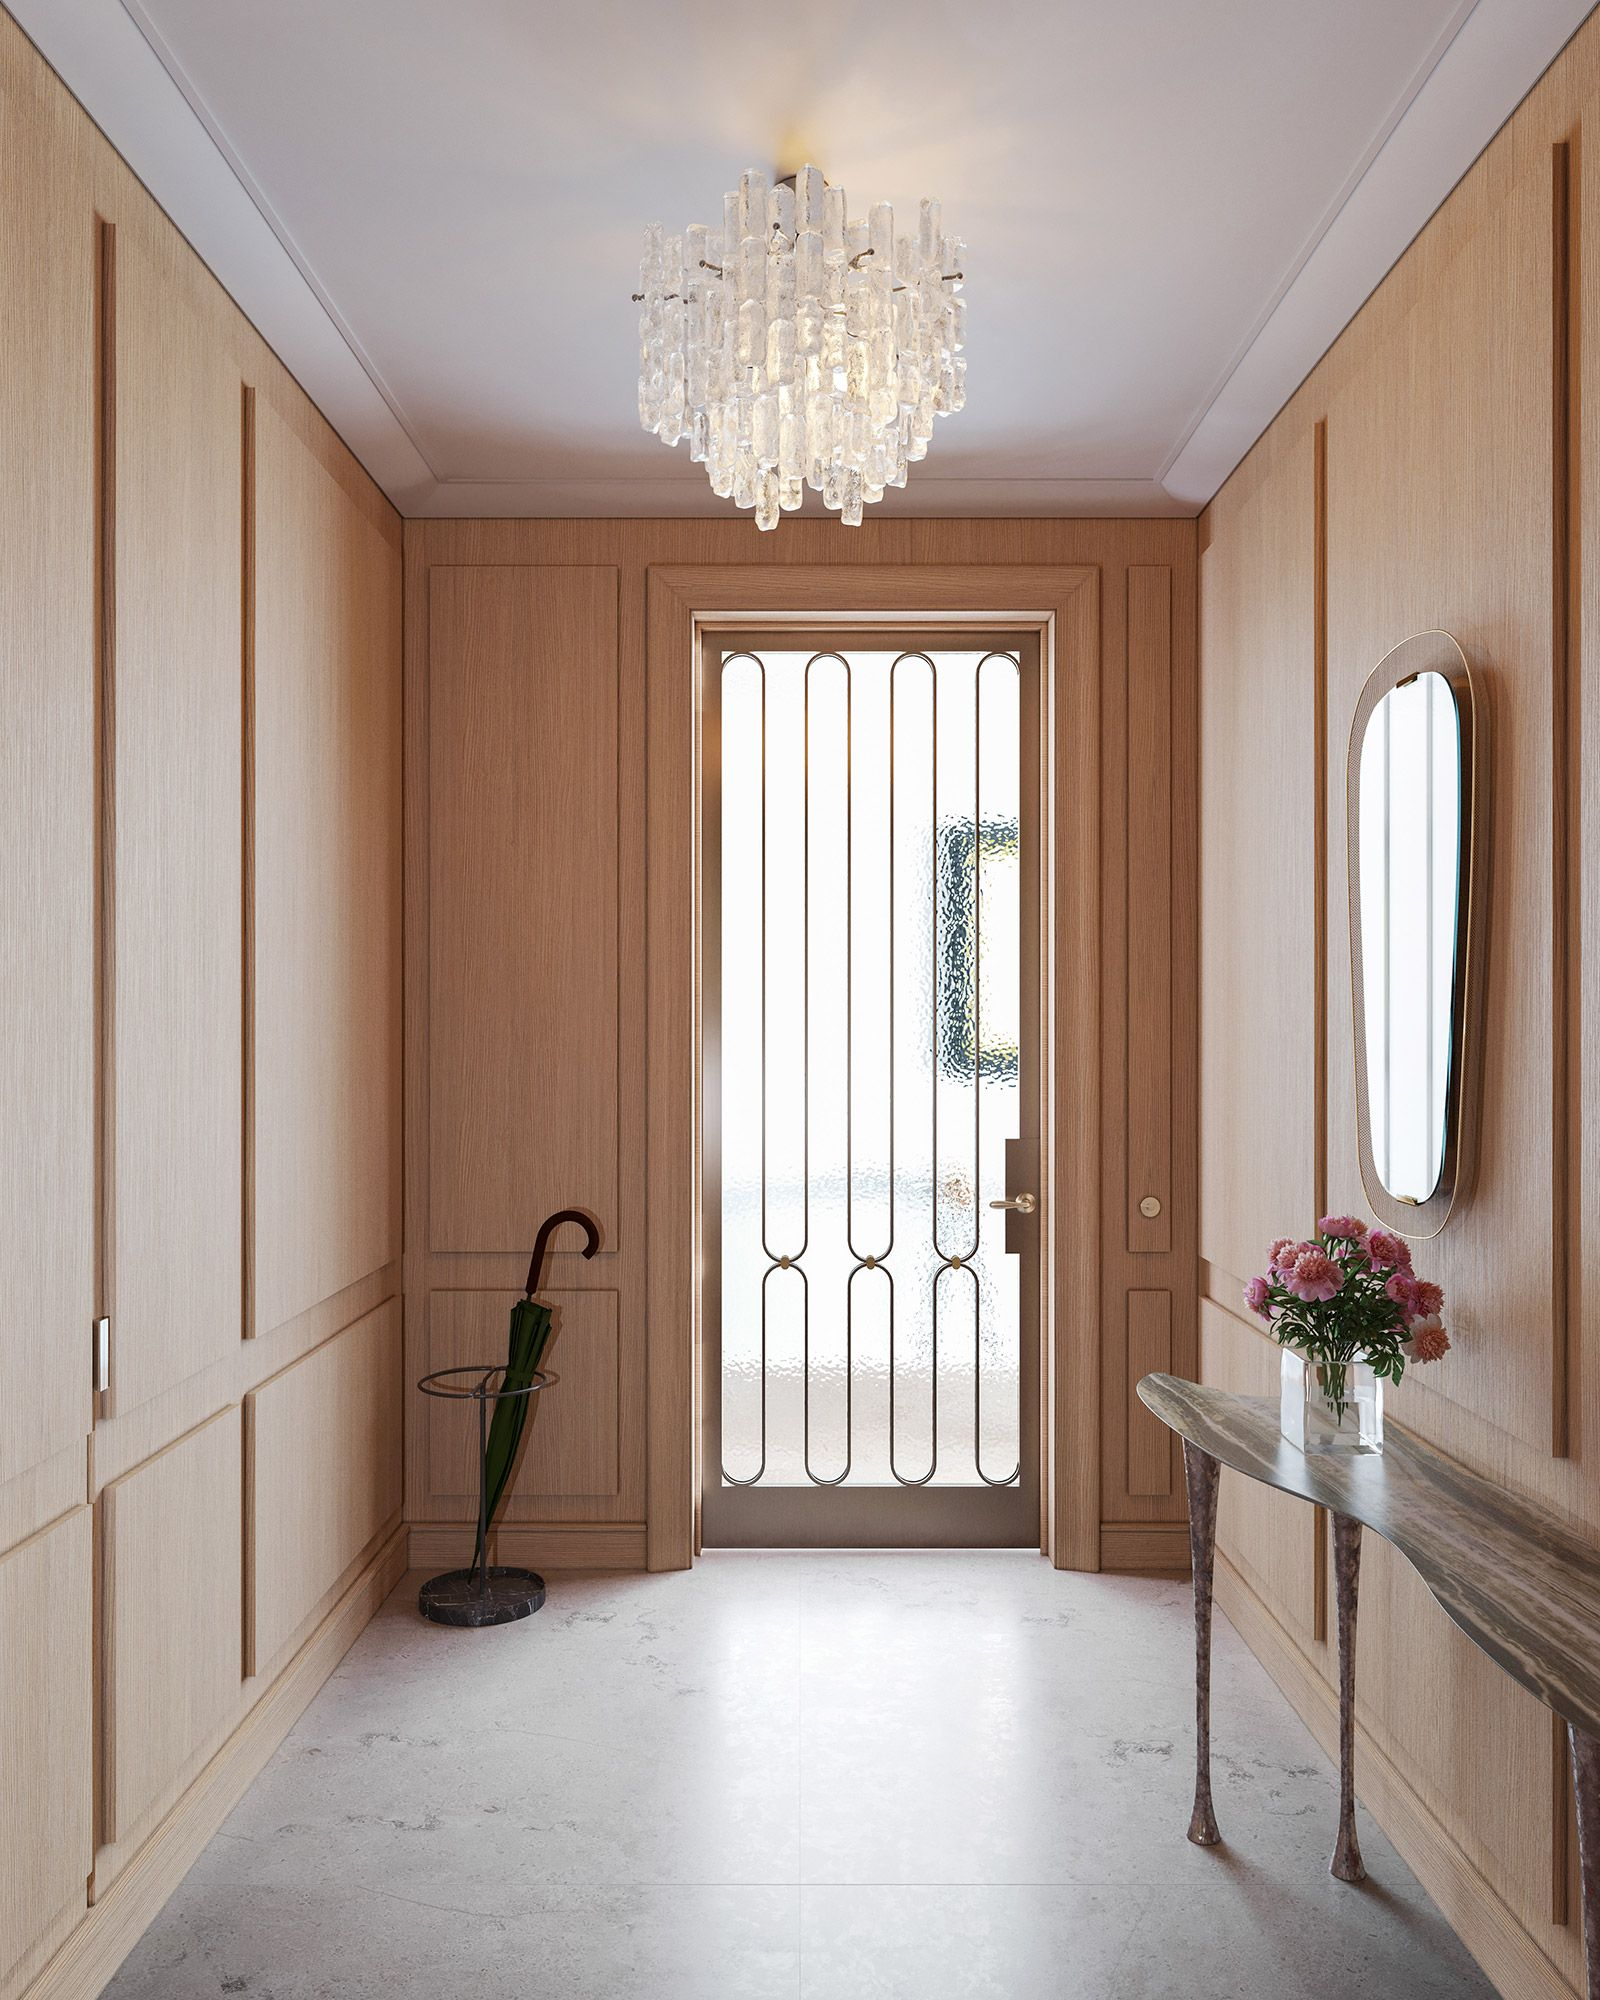 Full and half-floor residences feature private entry vestibules paneled in wire-brushed European oak